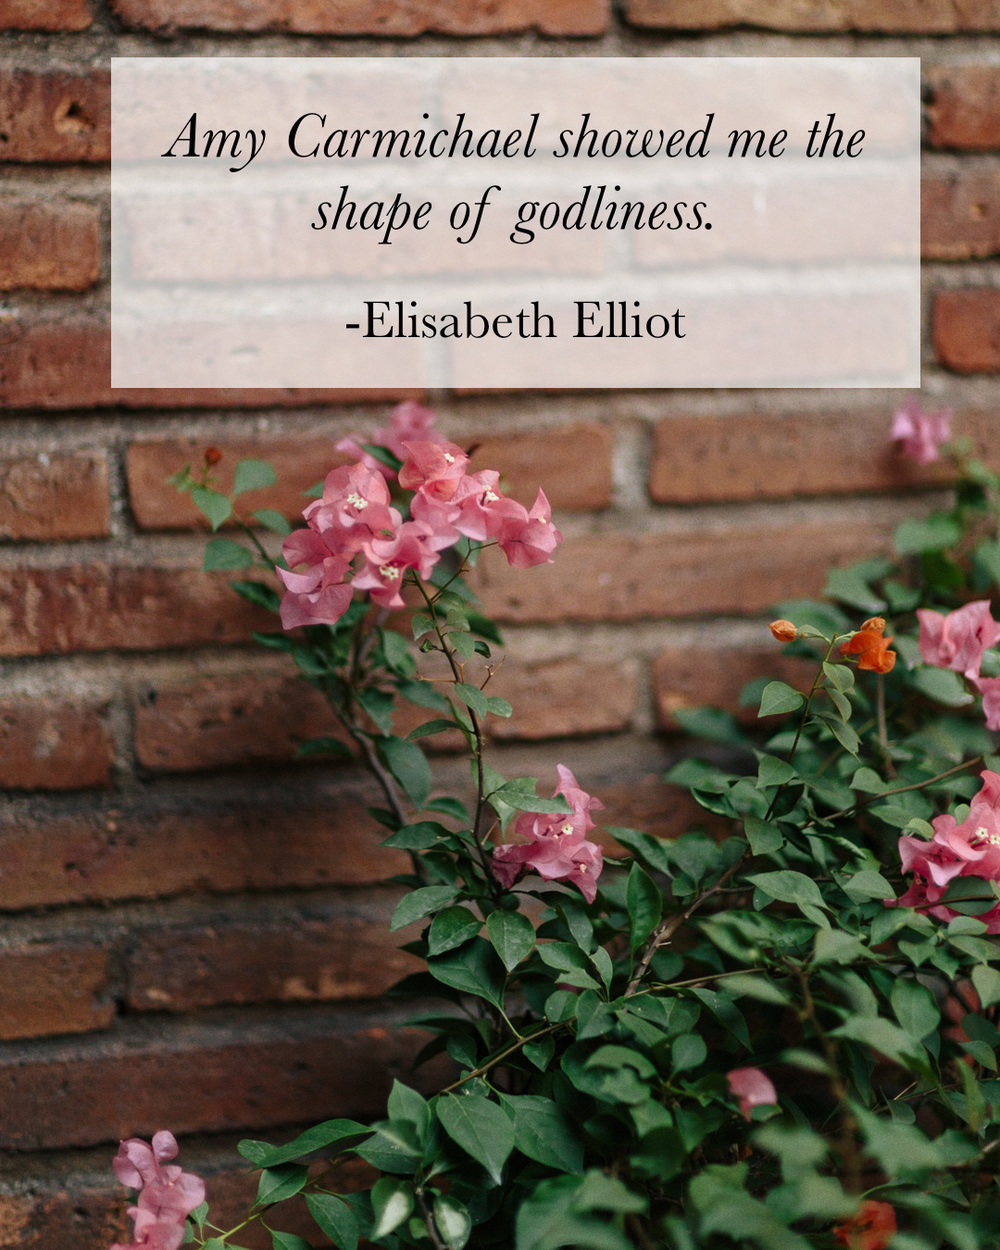 "Flowers growing next to a brick wall, quotation from Elisabeth Elliot speaking of Amy Carmichael, Christian woman and missionary: ""Amy Carmicahel showed me the shape of godliness."""